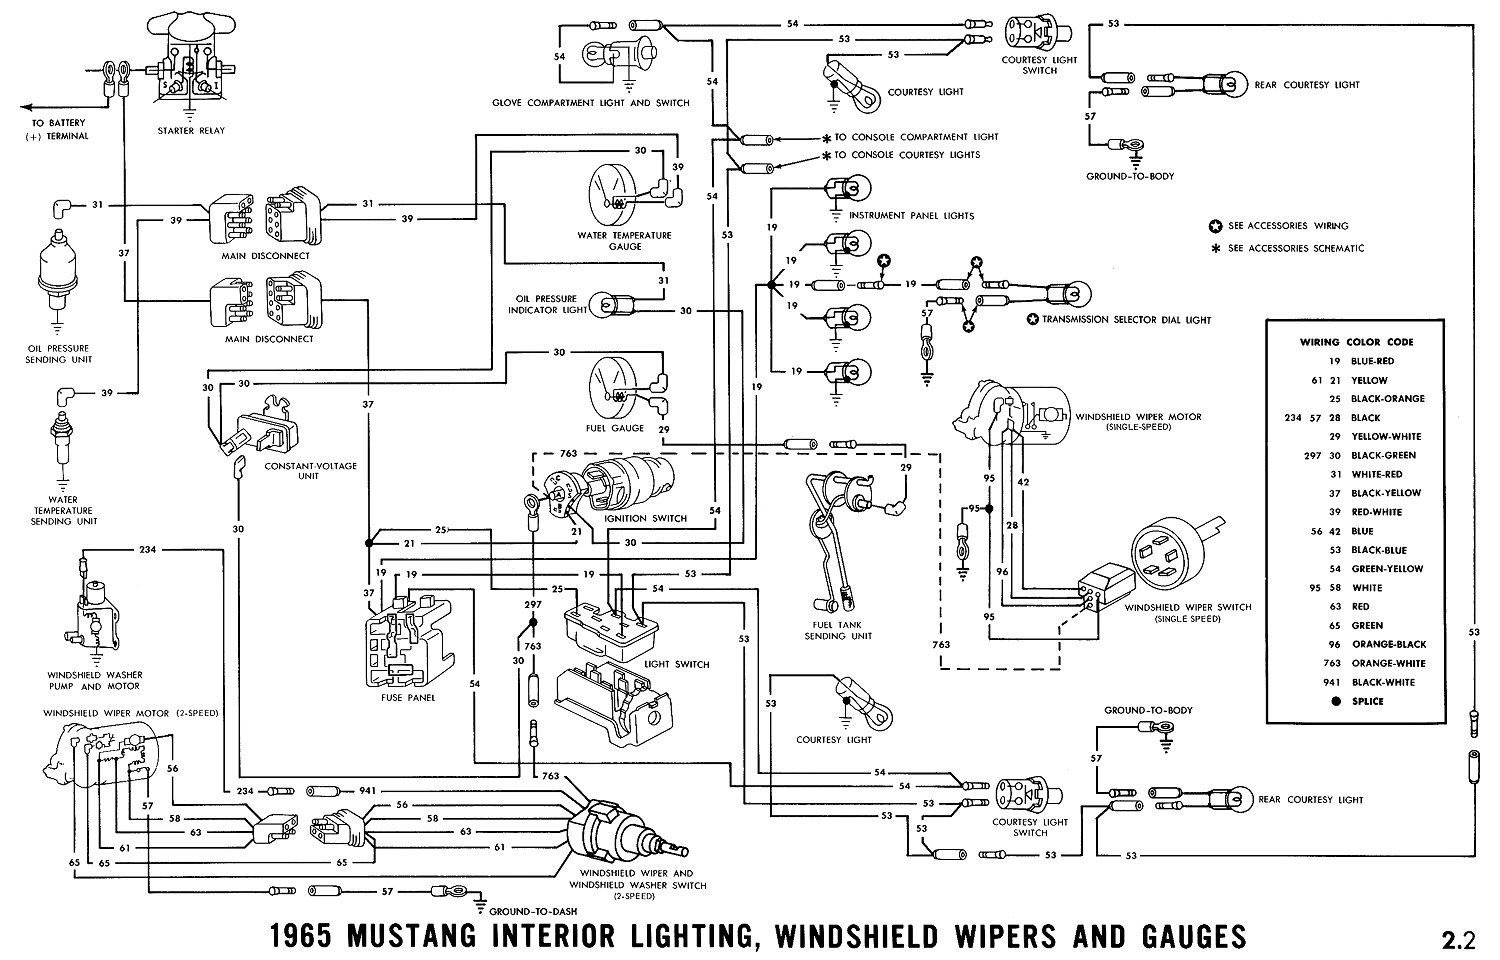 ford dome light wiring diagram ford ranger dome light 1965 mustang wiring diagrams average joe restoration 1965 mustang wiring diagrams average joe restoration oil pressure